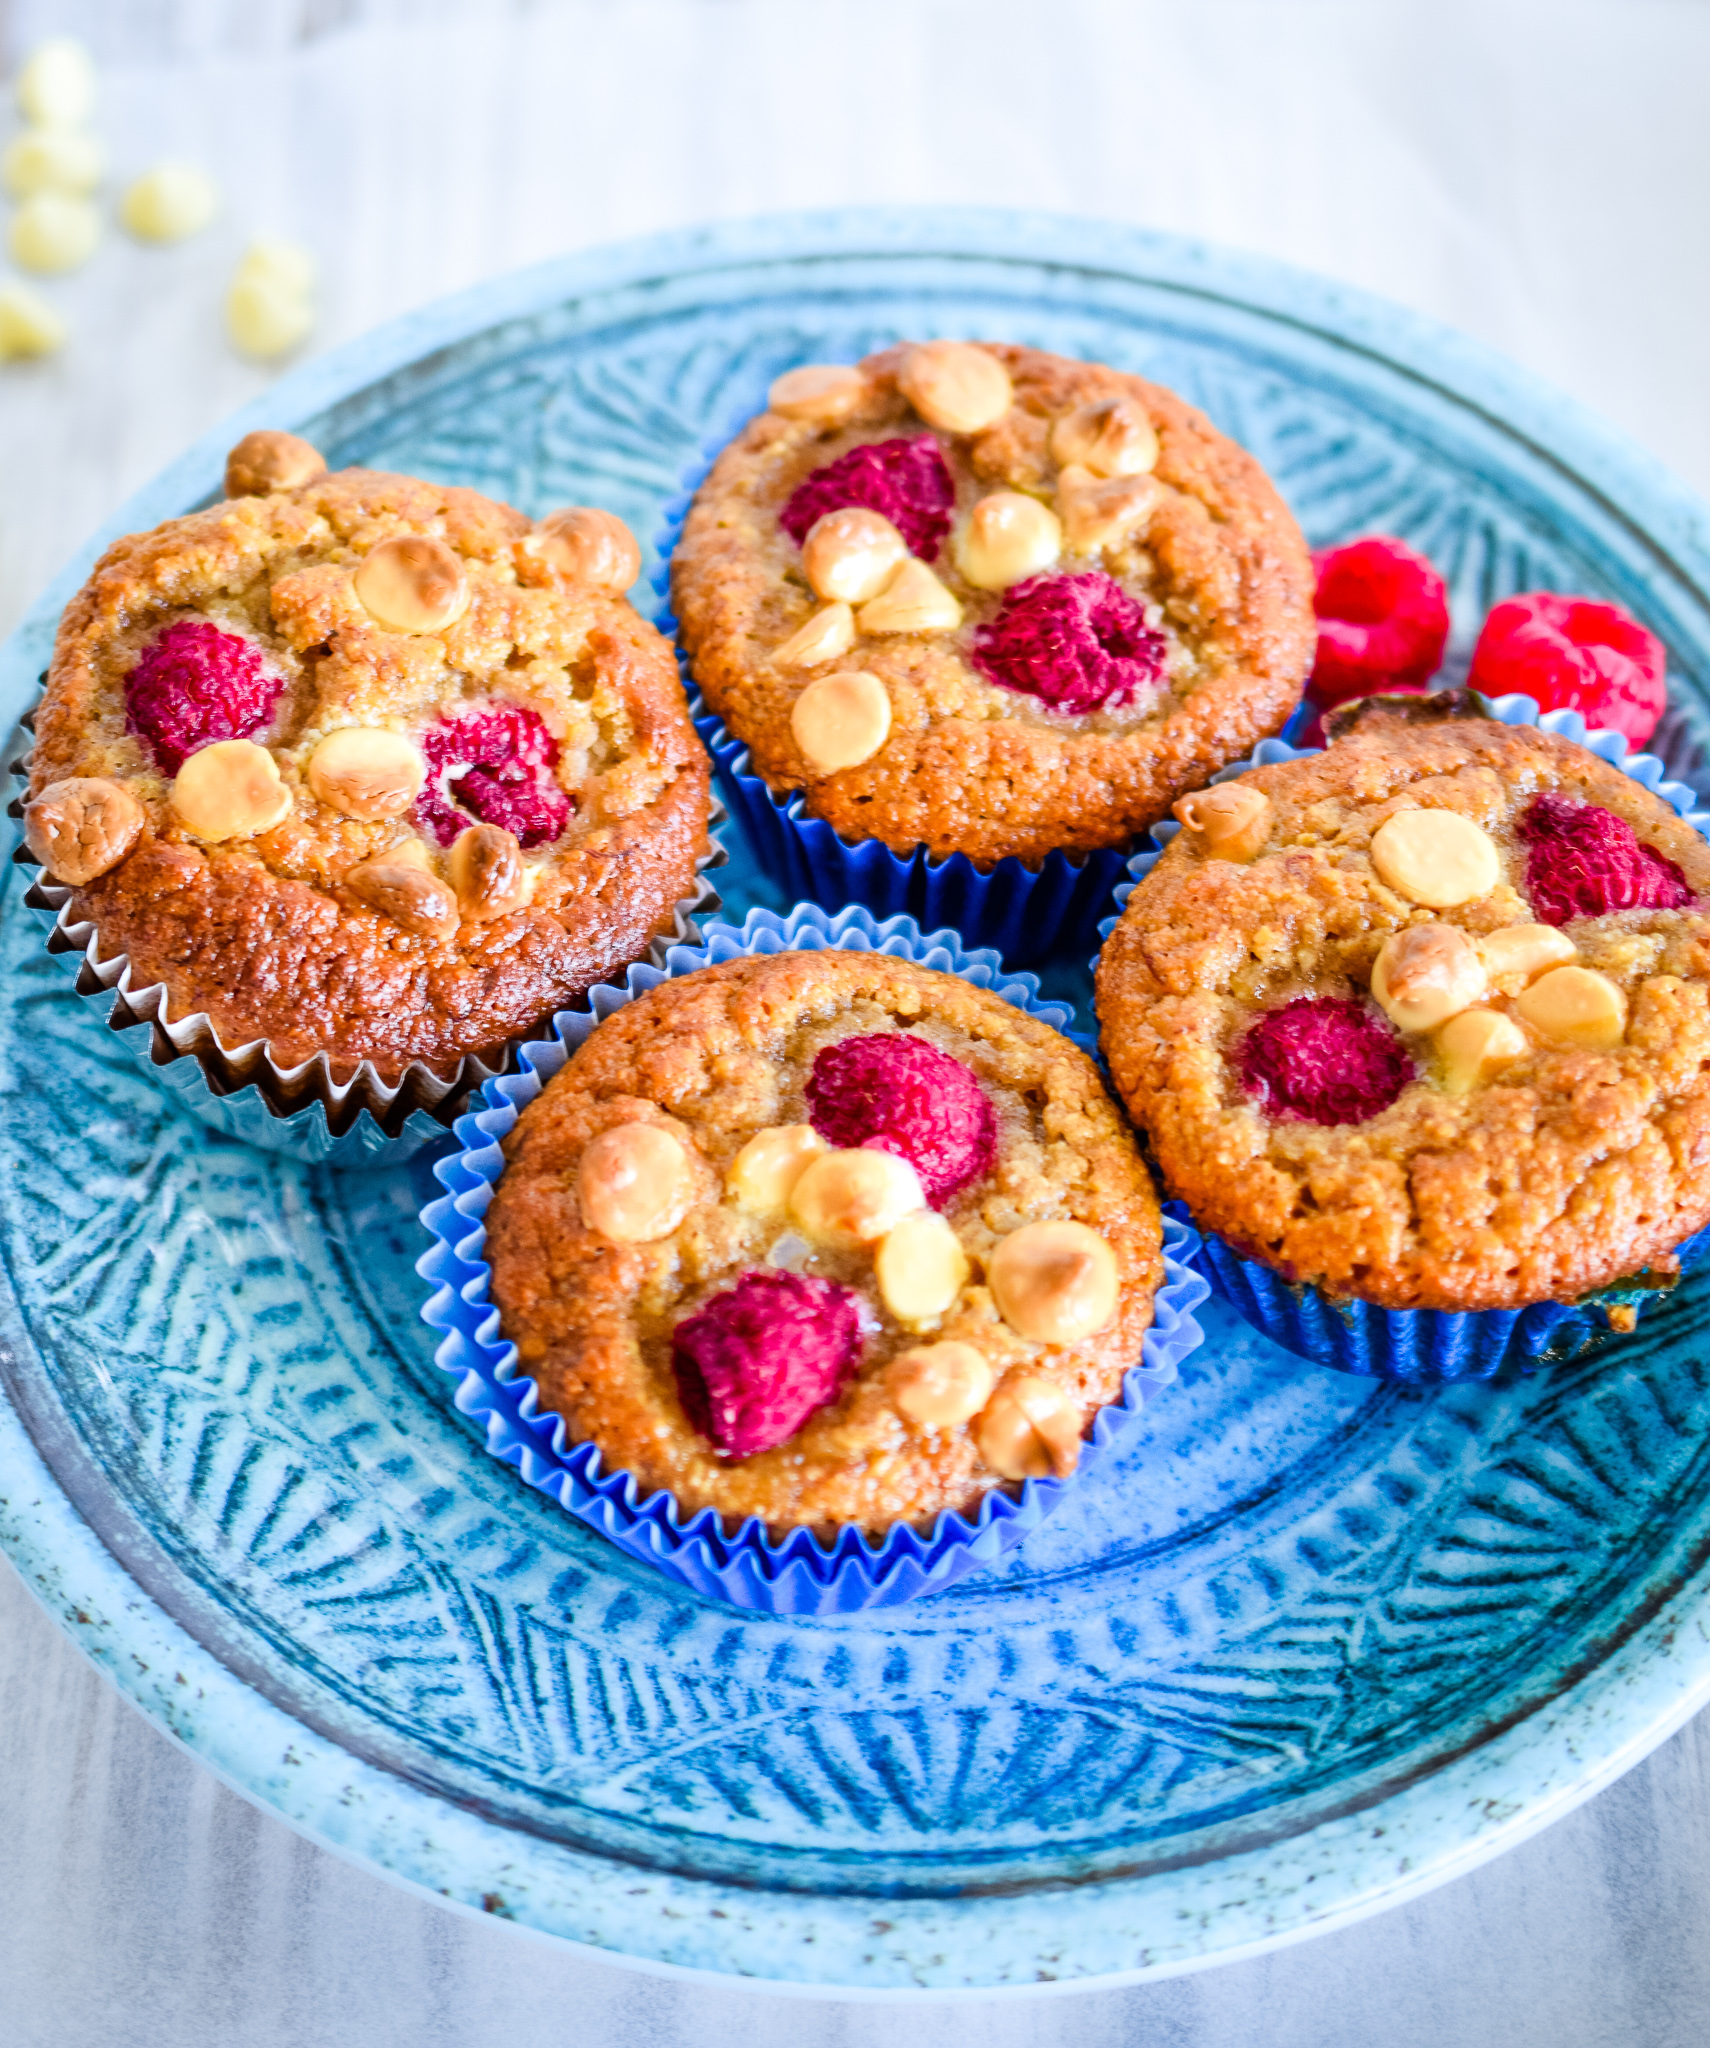 A plate of raspberry and white chocolate muffins